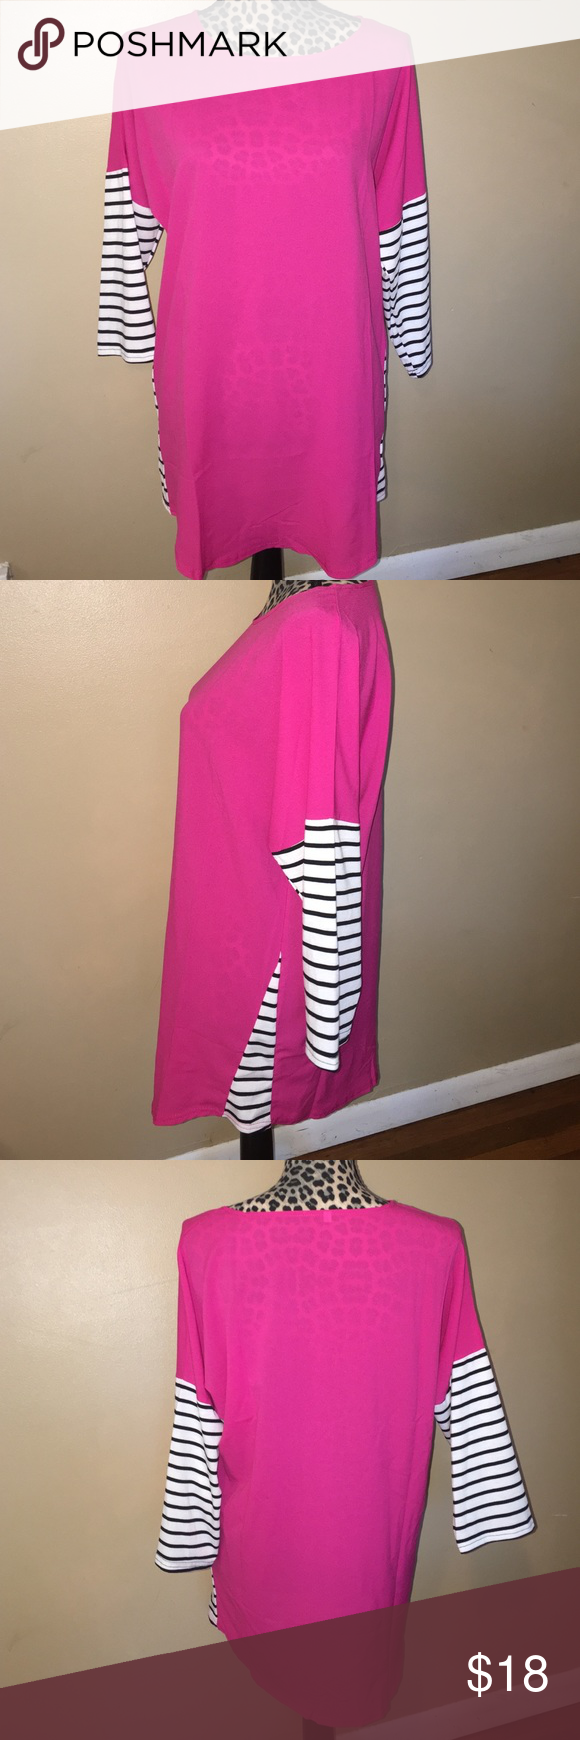 "Cute Tunic Size xl but fits more like a large in my opinion.. 31"" long. Never worn Tops Tunics"